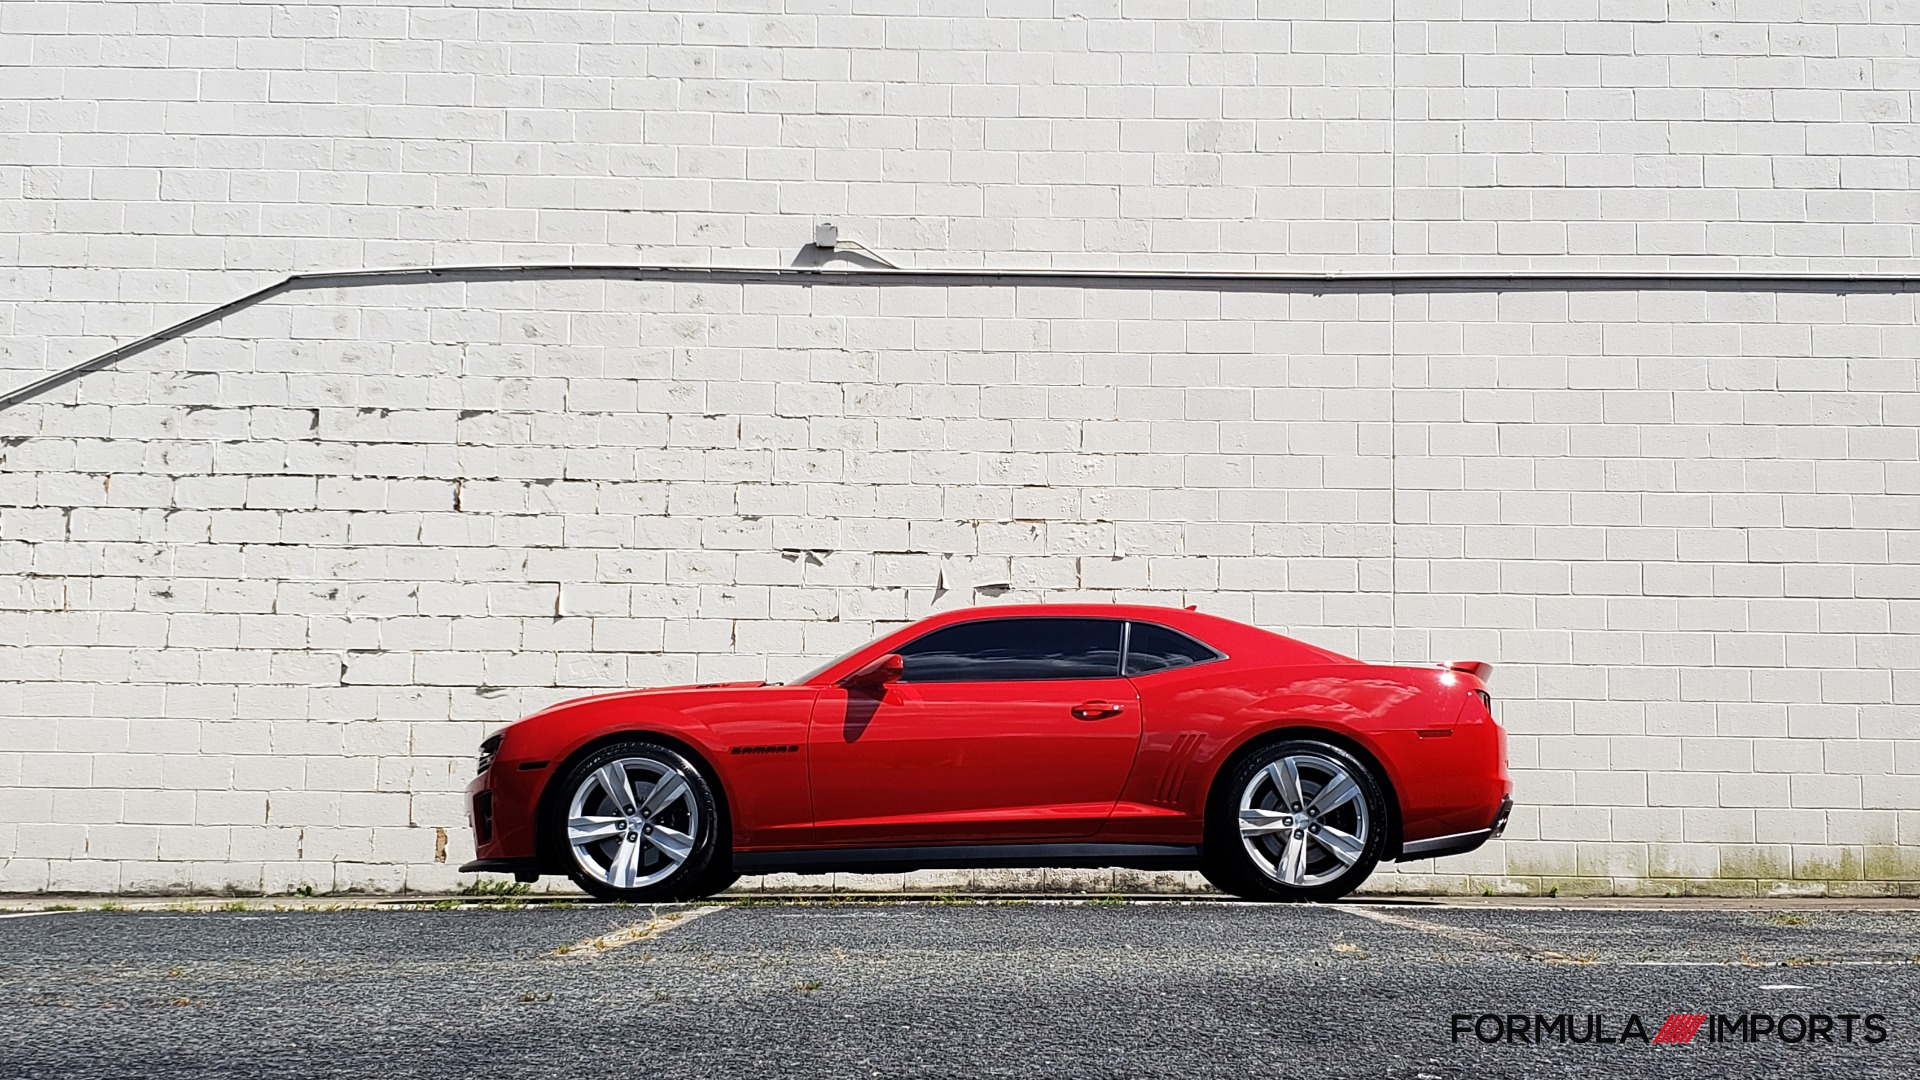 Used 2013 Chevrolet CAMARO ZL1 / 6.2L SUPERCHARGED 580HP / 6-SPD AUTO / NAV / REARVIEW for sale Sold at Formula Imports in Charlotte NC 28227 94